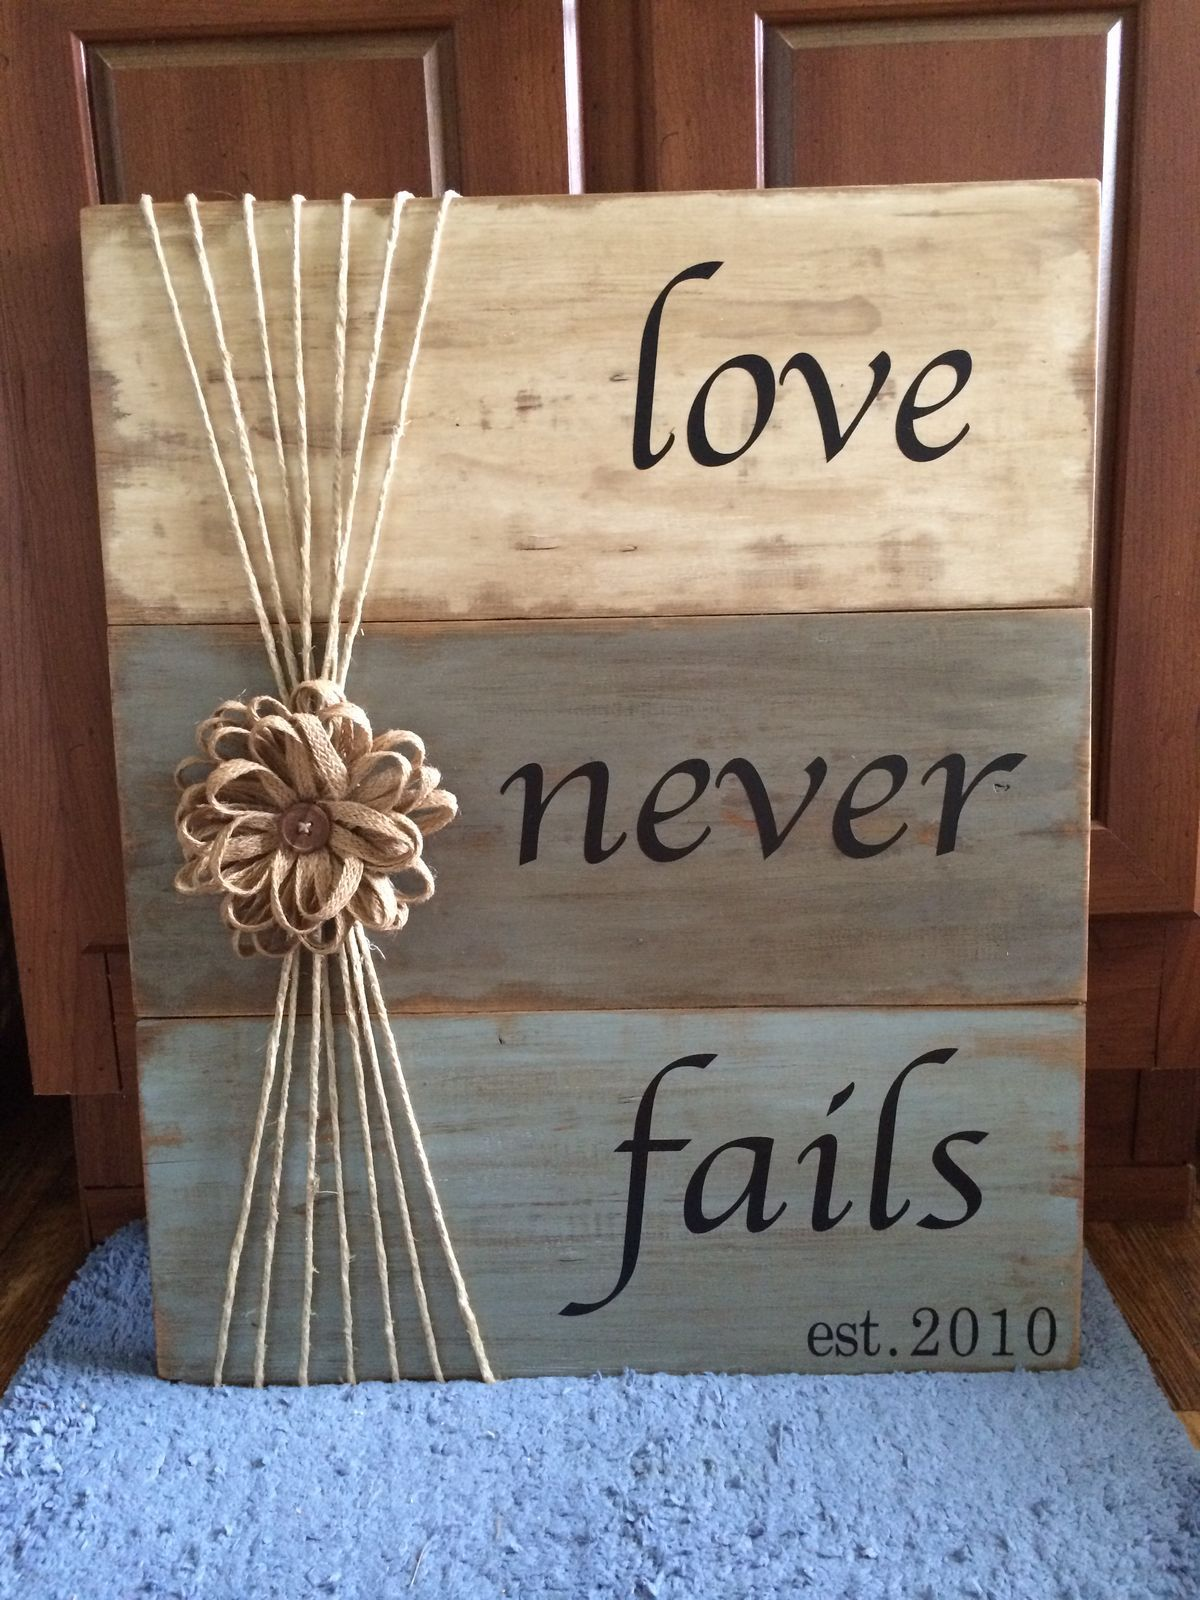 39+ Wood signs for crafts ideas in 2021